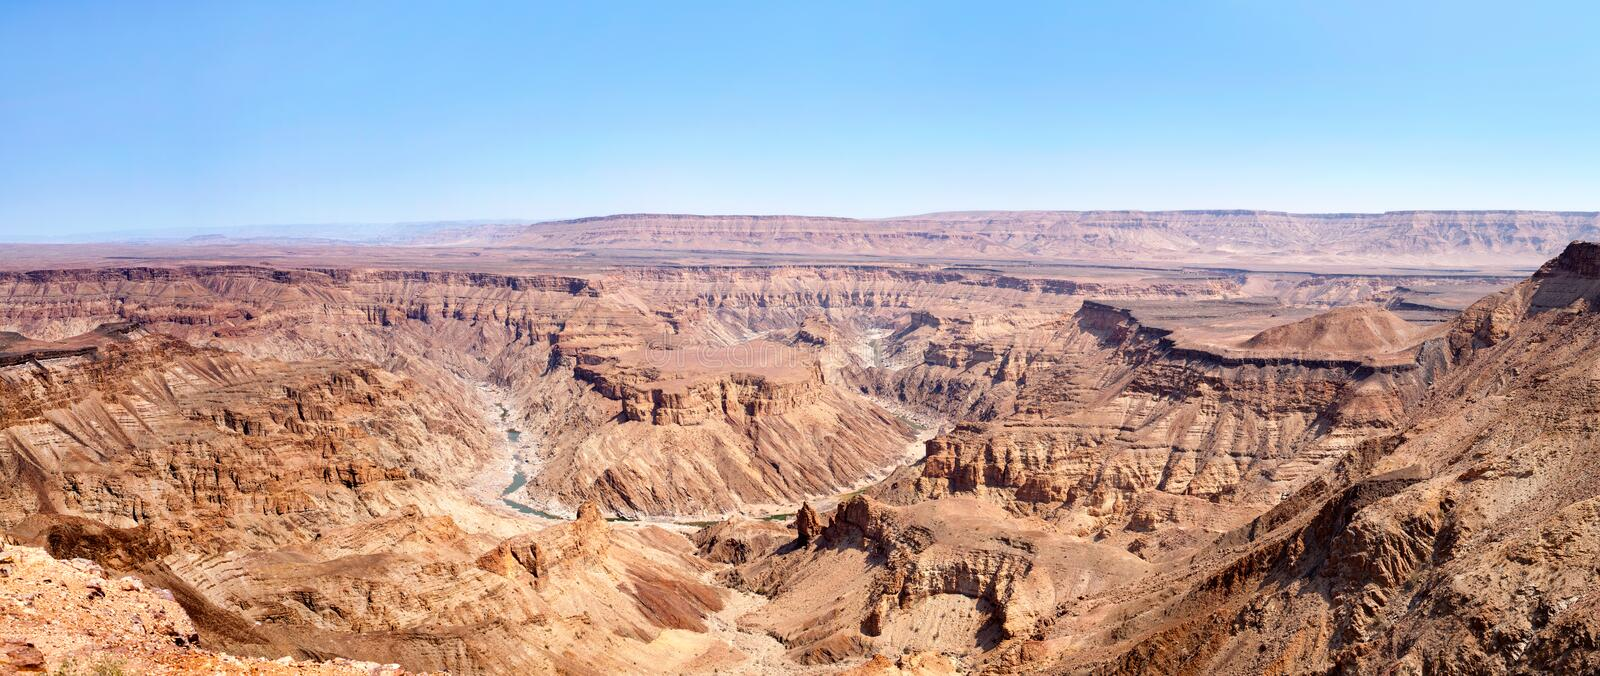 Fish River Canyon during the dry season top view, beautiful scenic mountain landscape panorama in Southern Africa, Namibia royalty free stock images